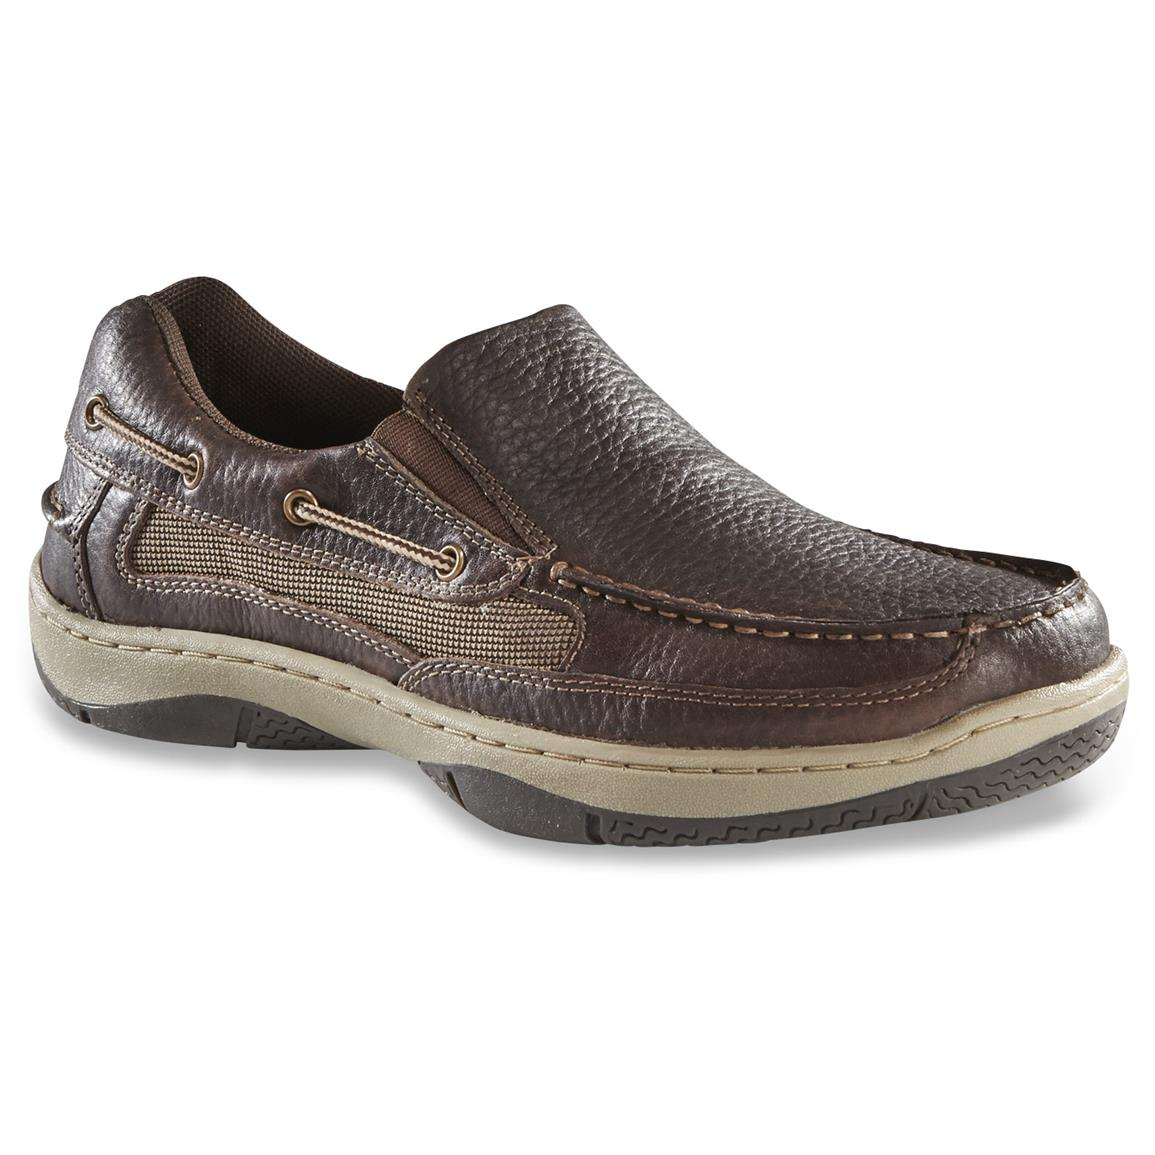 Guide Gear Men's Slip On Boat Shoes, Dark Brown